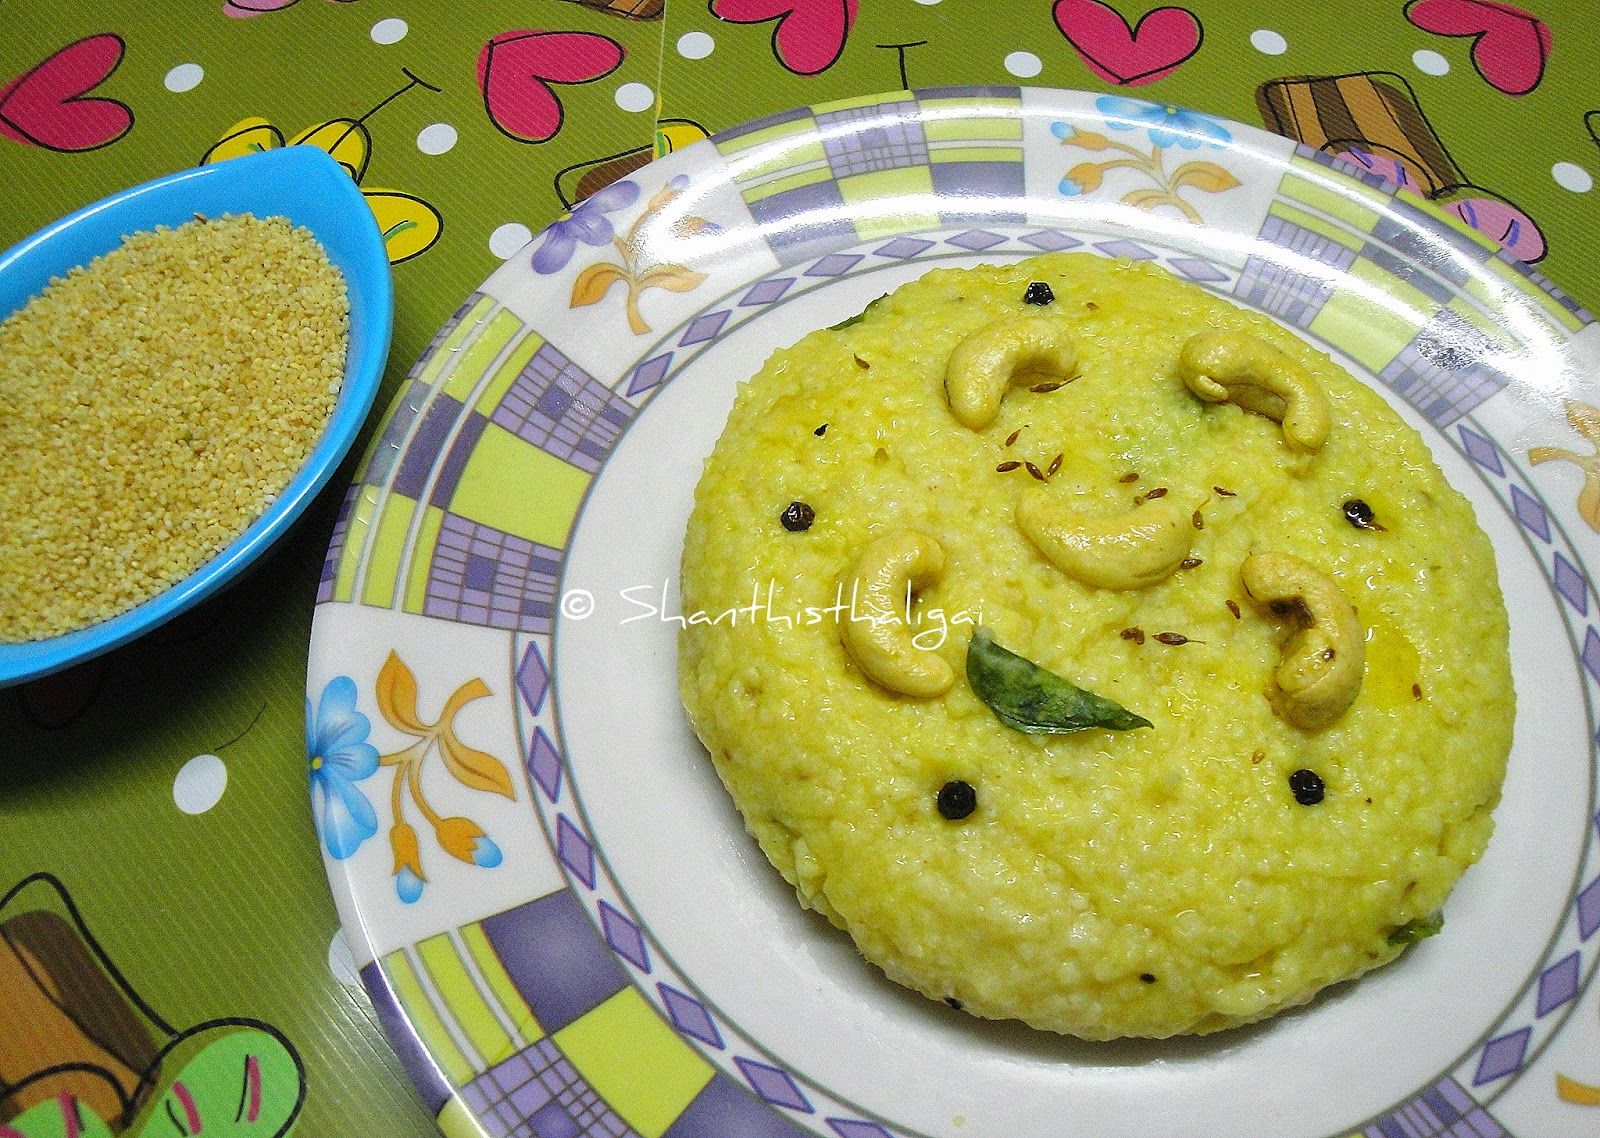 THINAI VENN PONGAL,THINAI PONGAL, HOW TO MAKE THINAI PONGAL, MILLET RECIPES